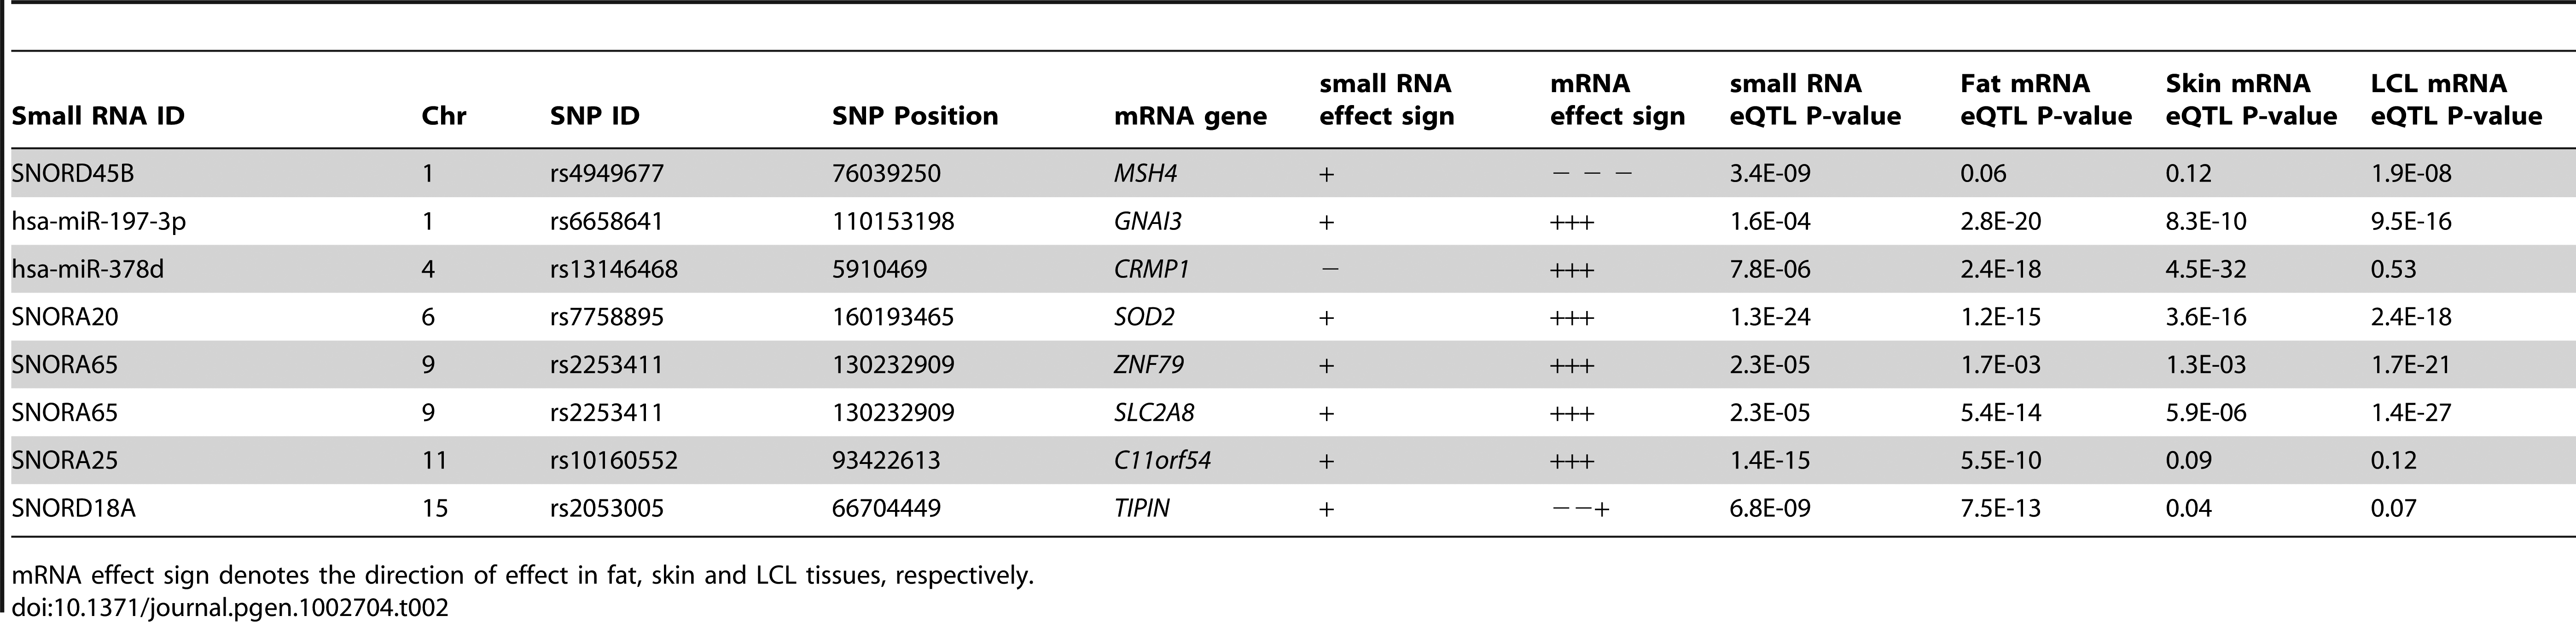 Overlap of small RNA cis-eQTLs and mRNA cis-eQTLs from the MuTHER study.